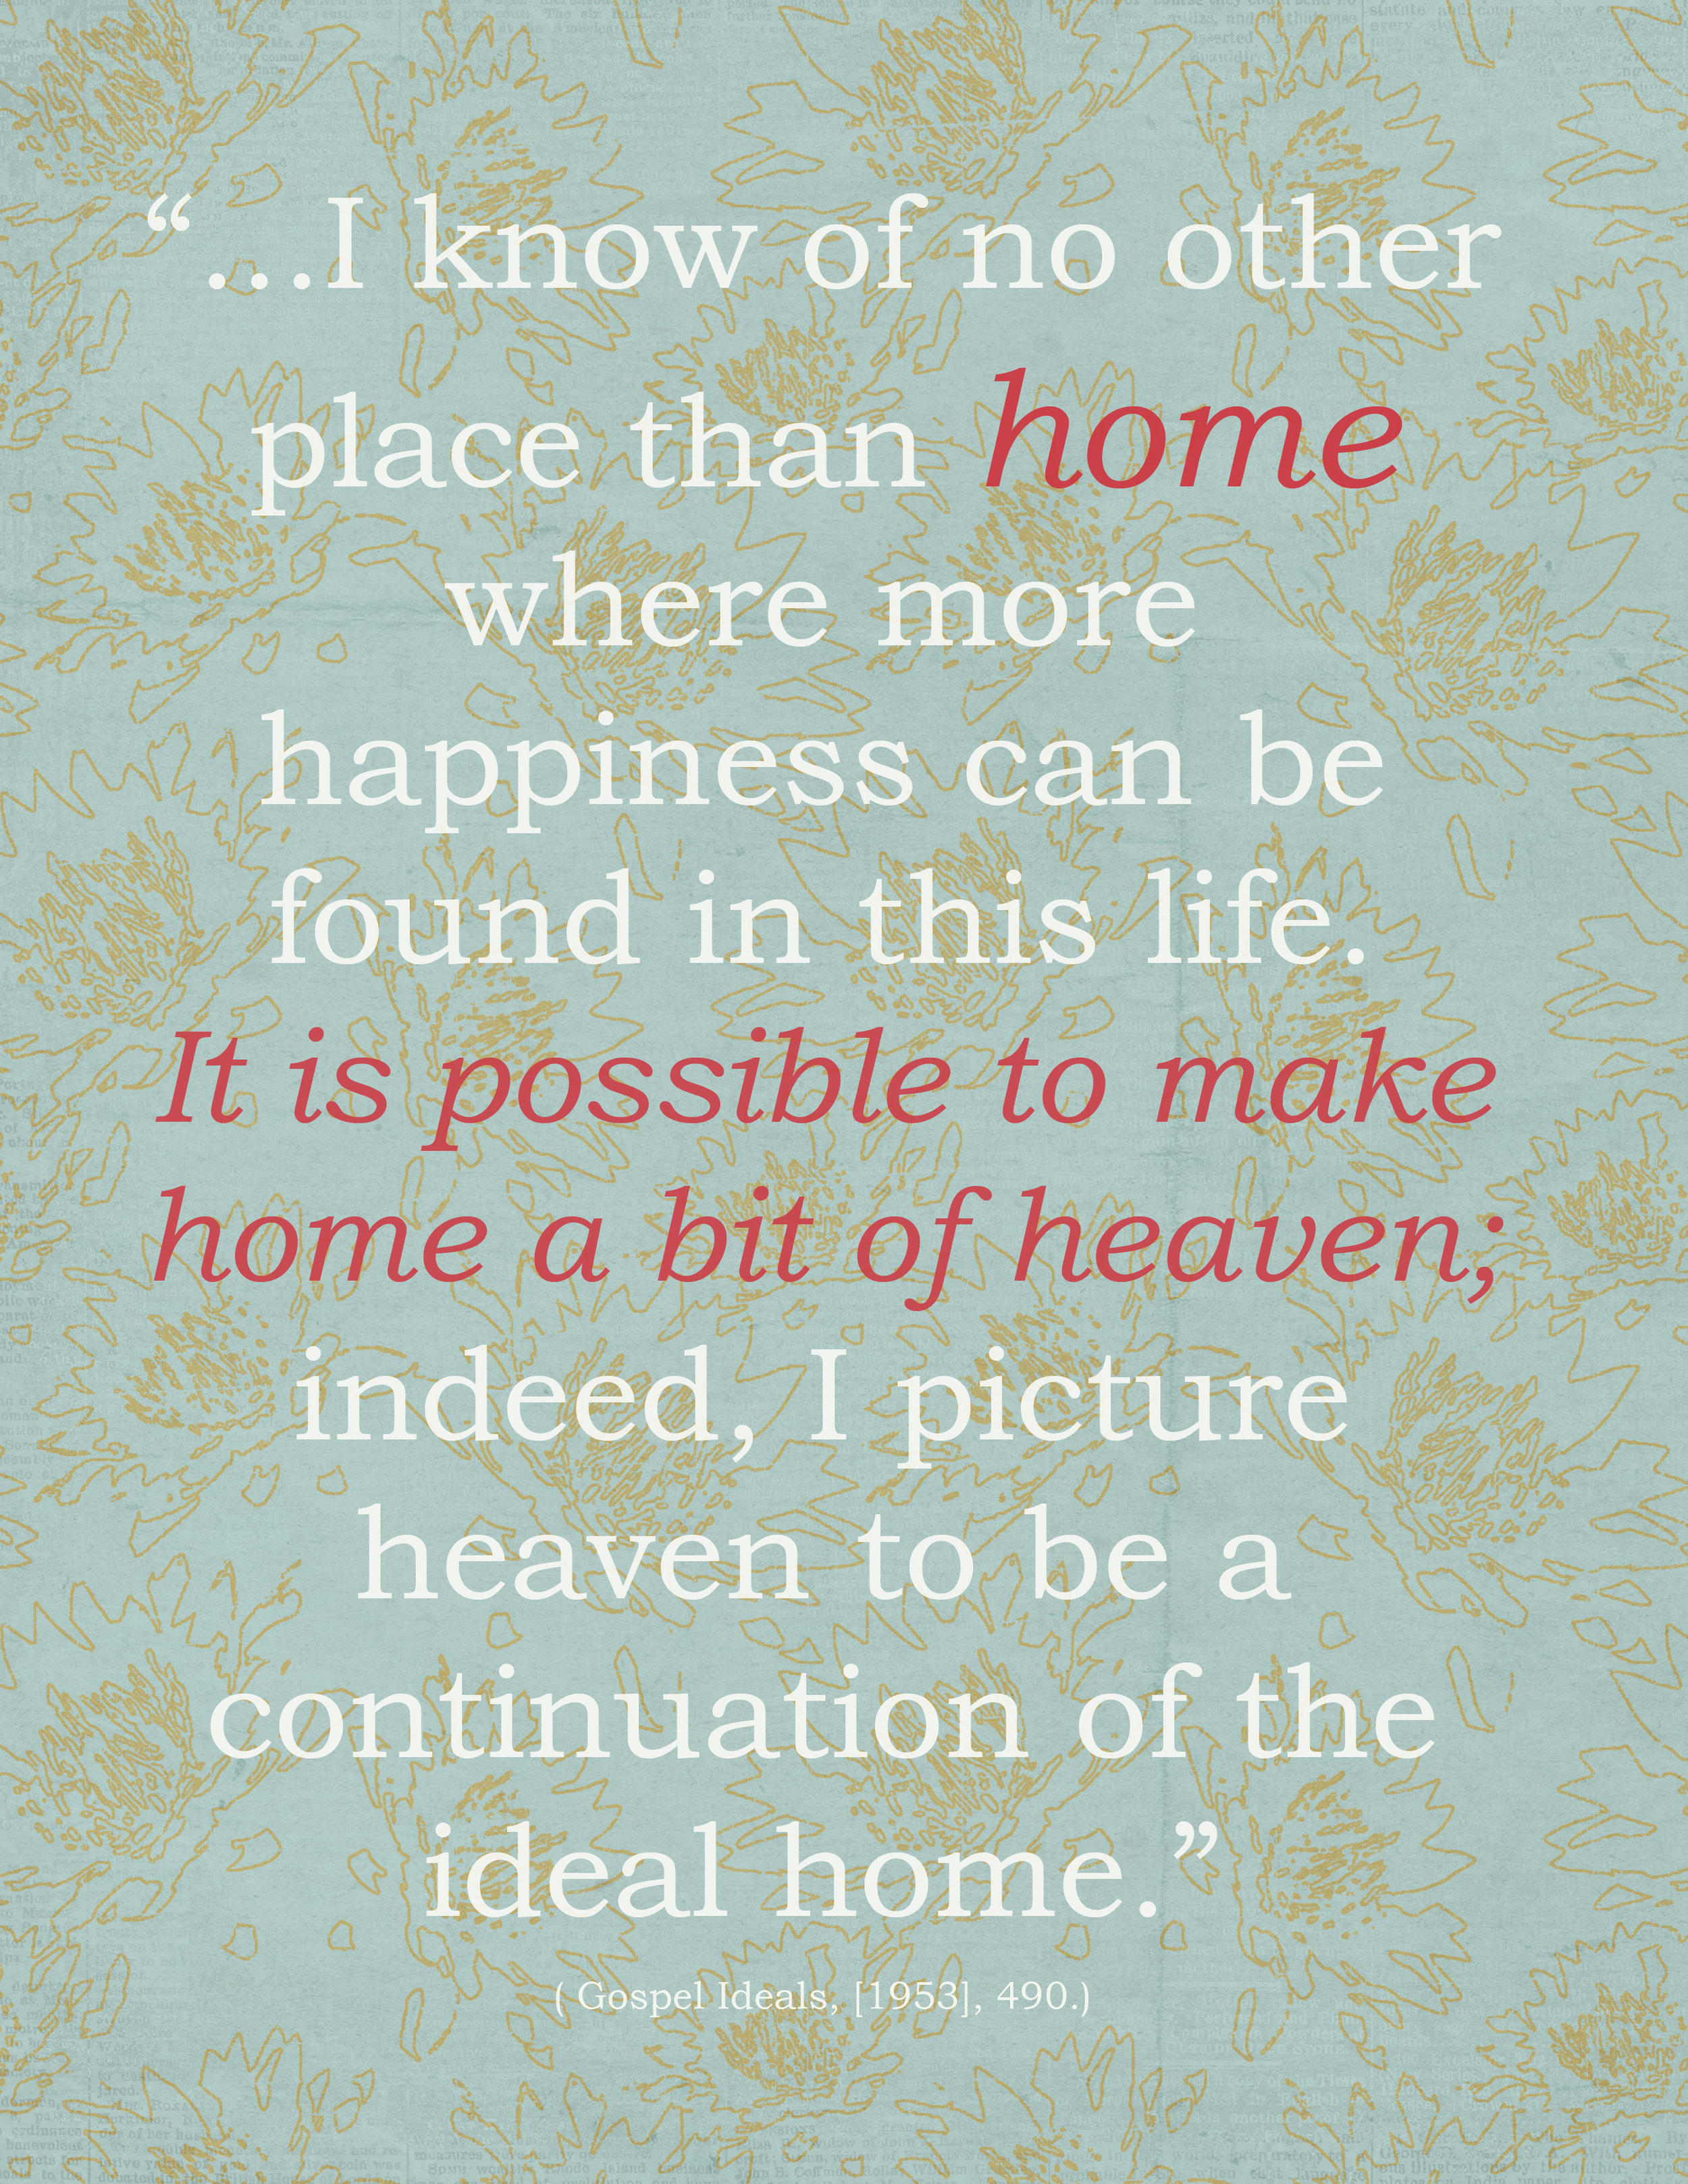 home quote.jpg